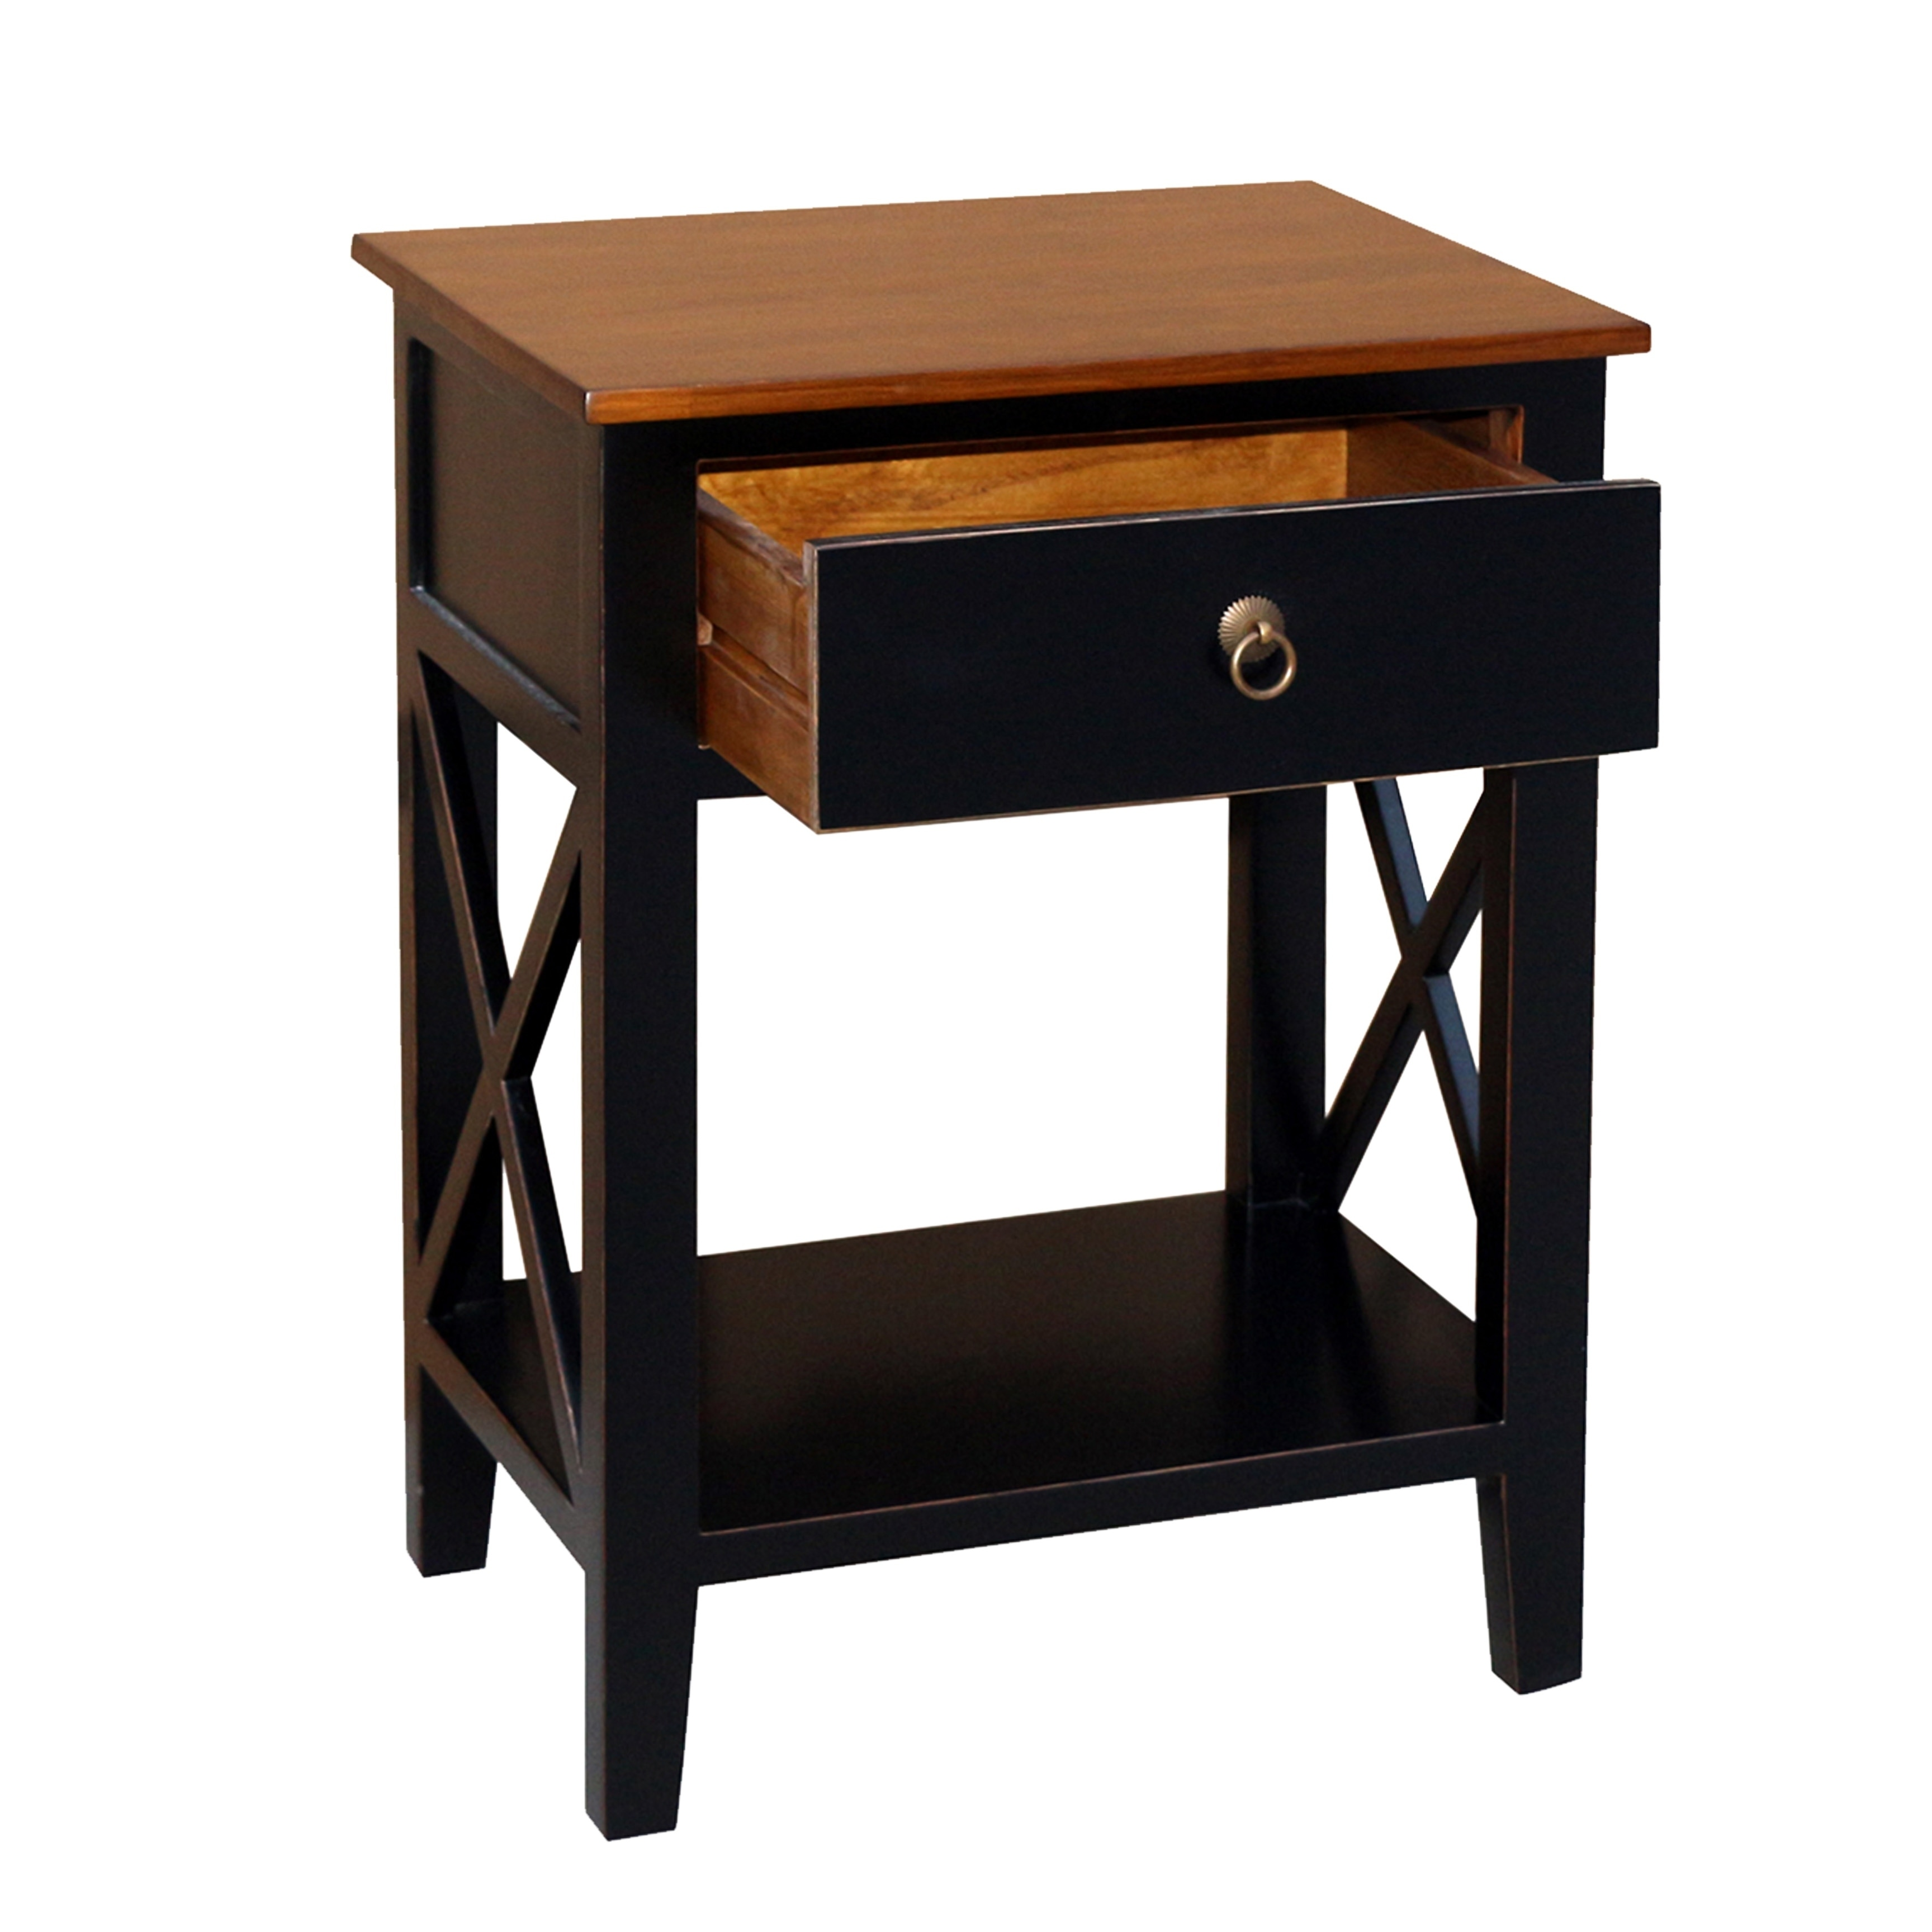 Porthos Home Unique Side Table Cabinet With Drawer Shelf For Bedroom Overstock 27276758